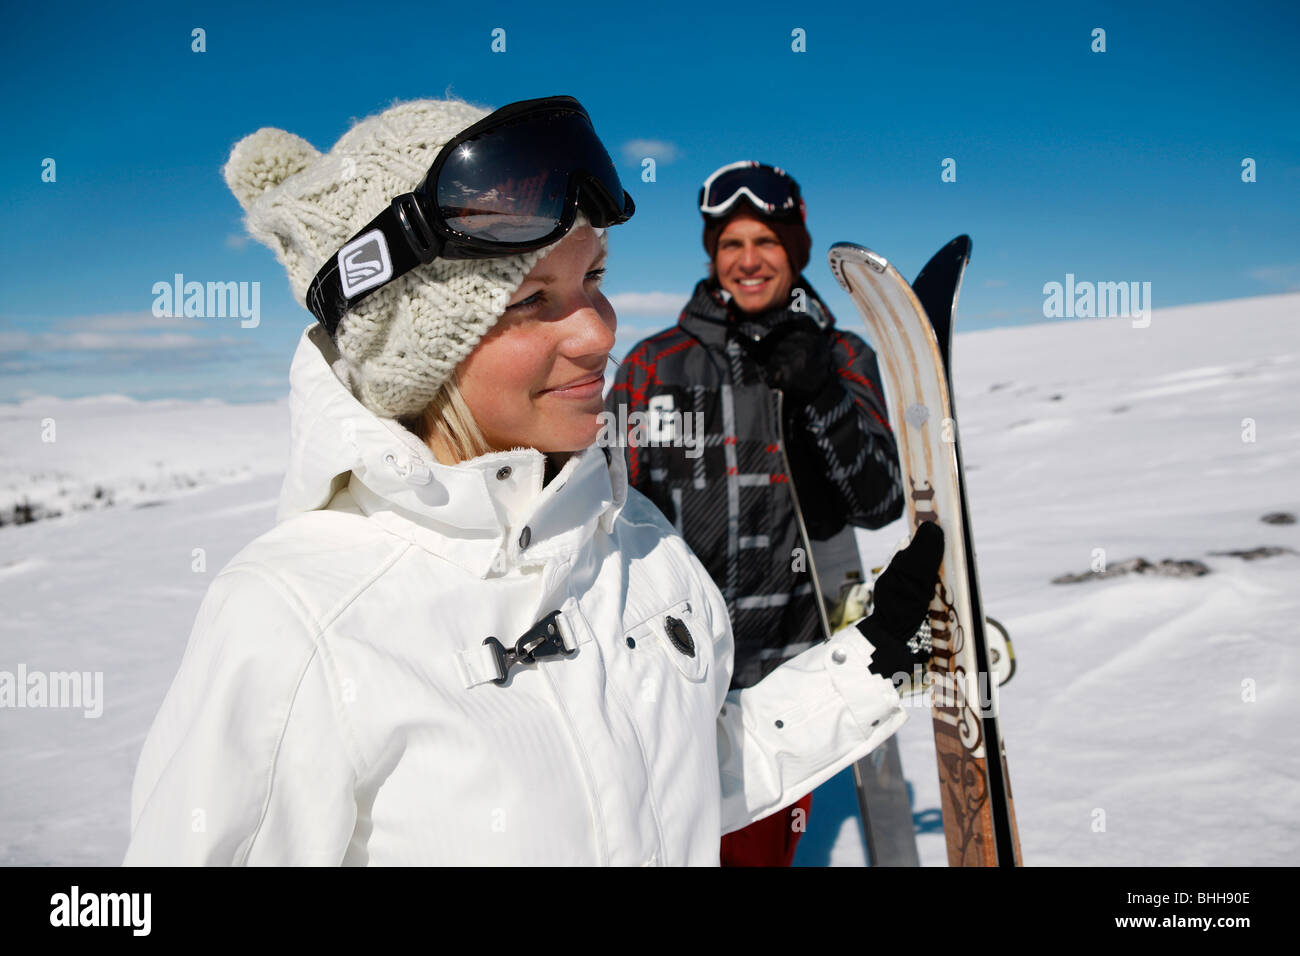 Young man and woman skiing, Sweden. - Stock Image